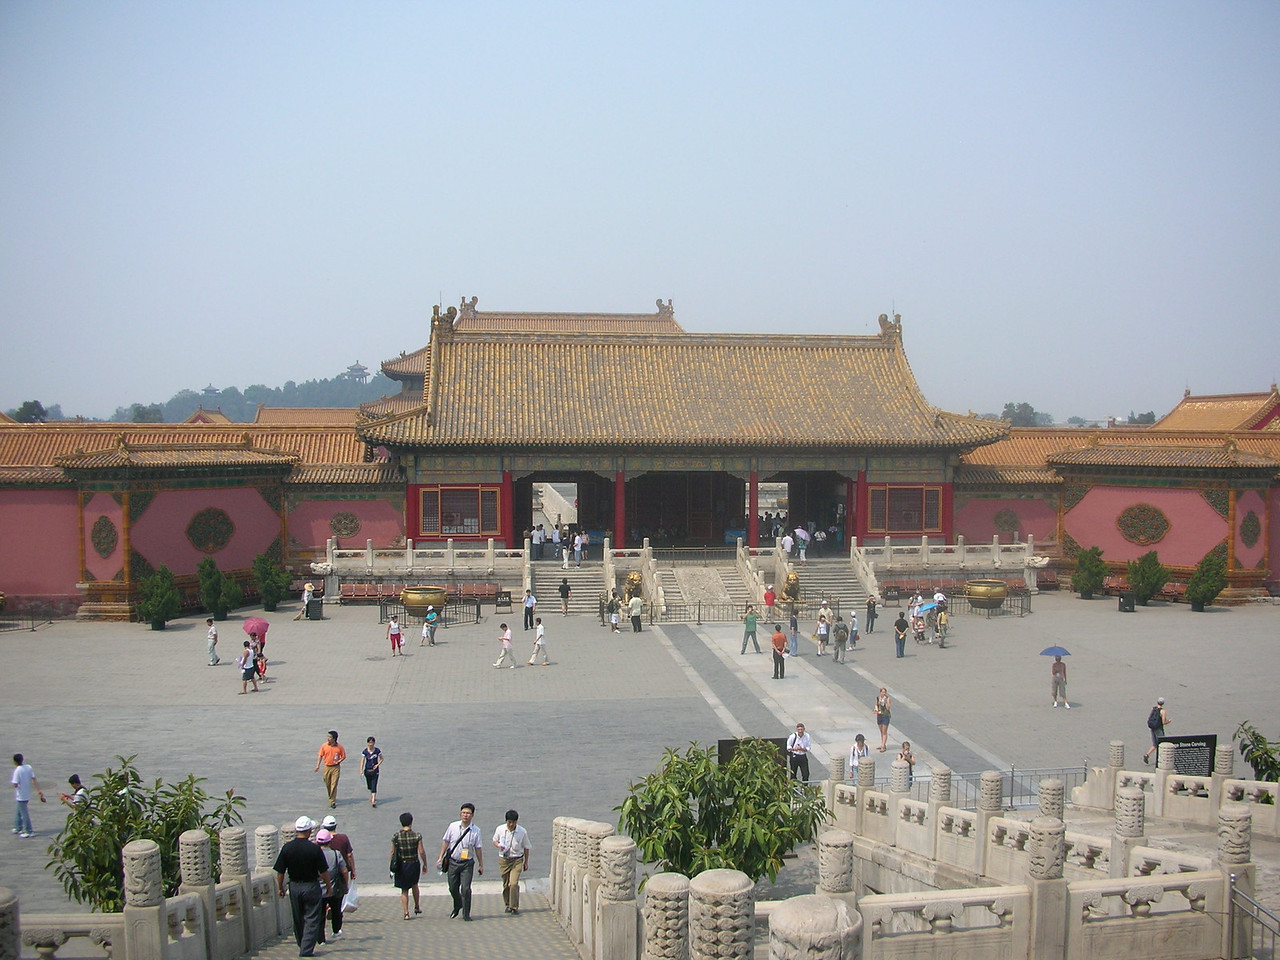 Inside the walls of the Forbidden City.